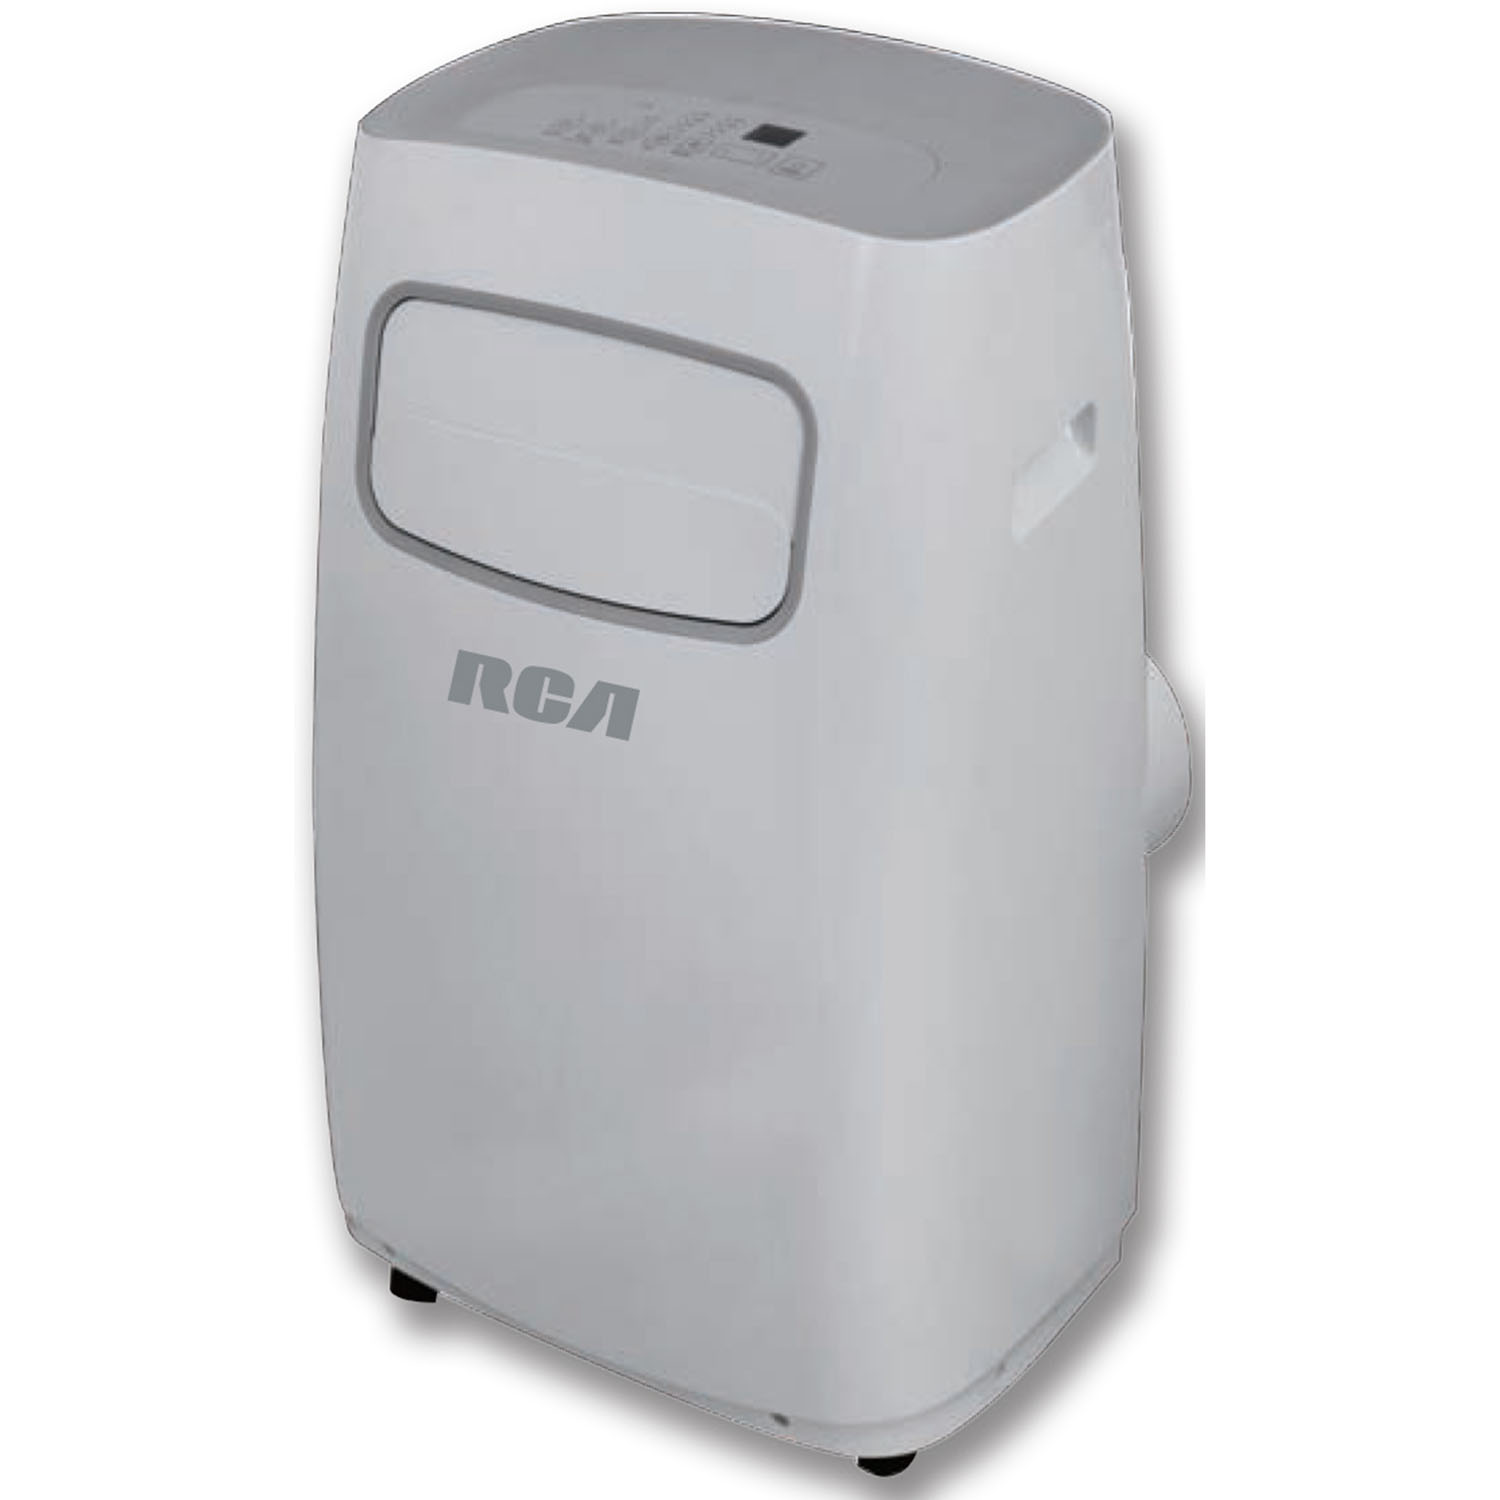 Rca 3 in 1 portable 14 000 btu air conditioner with remote for 14 000 btu window air conditioner